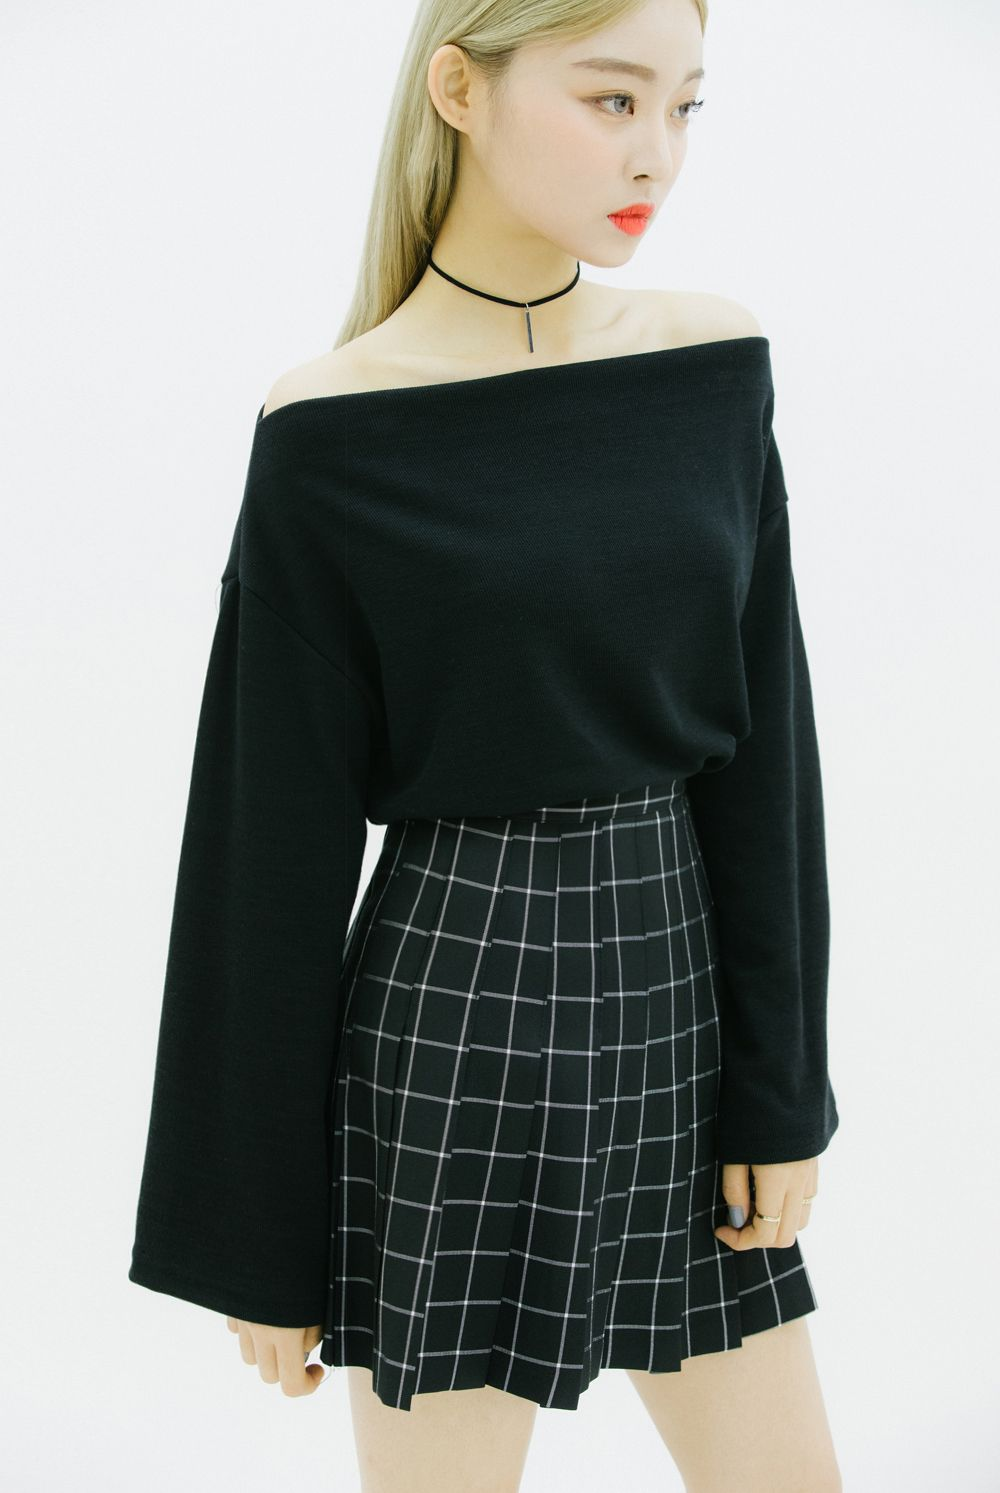 A casual piece that fits all wardrobes this top makes for a great